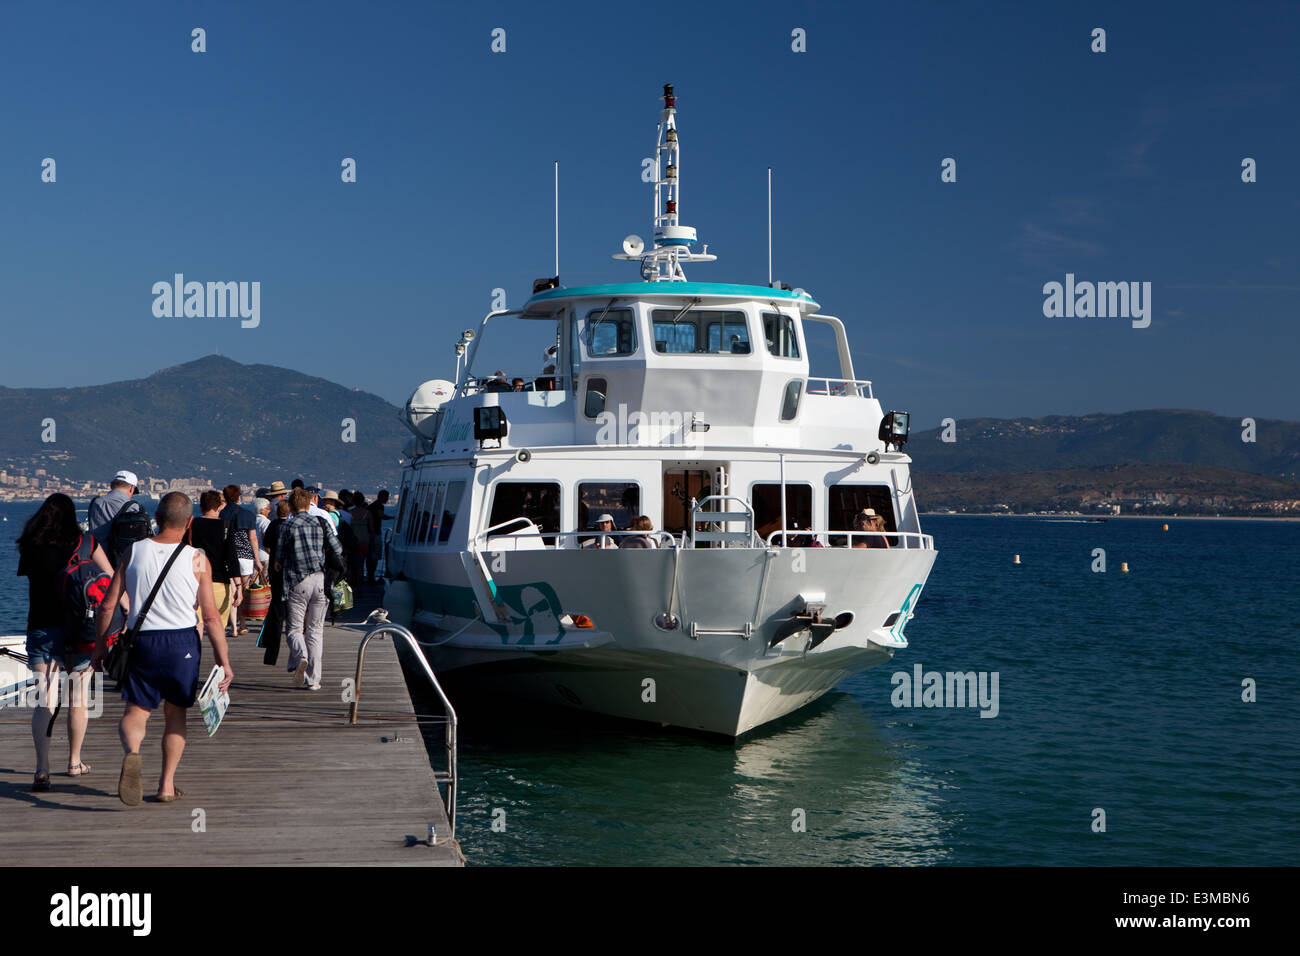 The M/S Natura picking-up passengers at Porticcio for Scandola tour - Stock Image